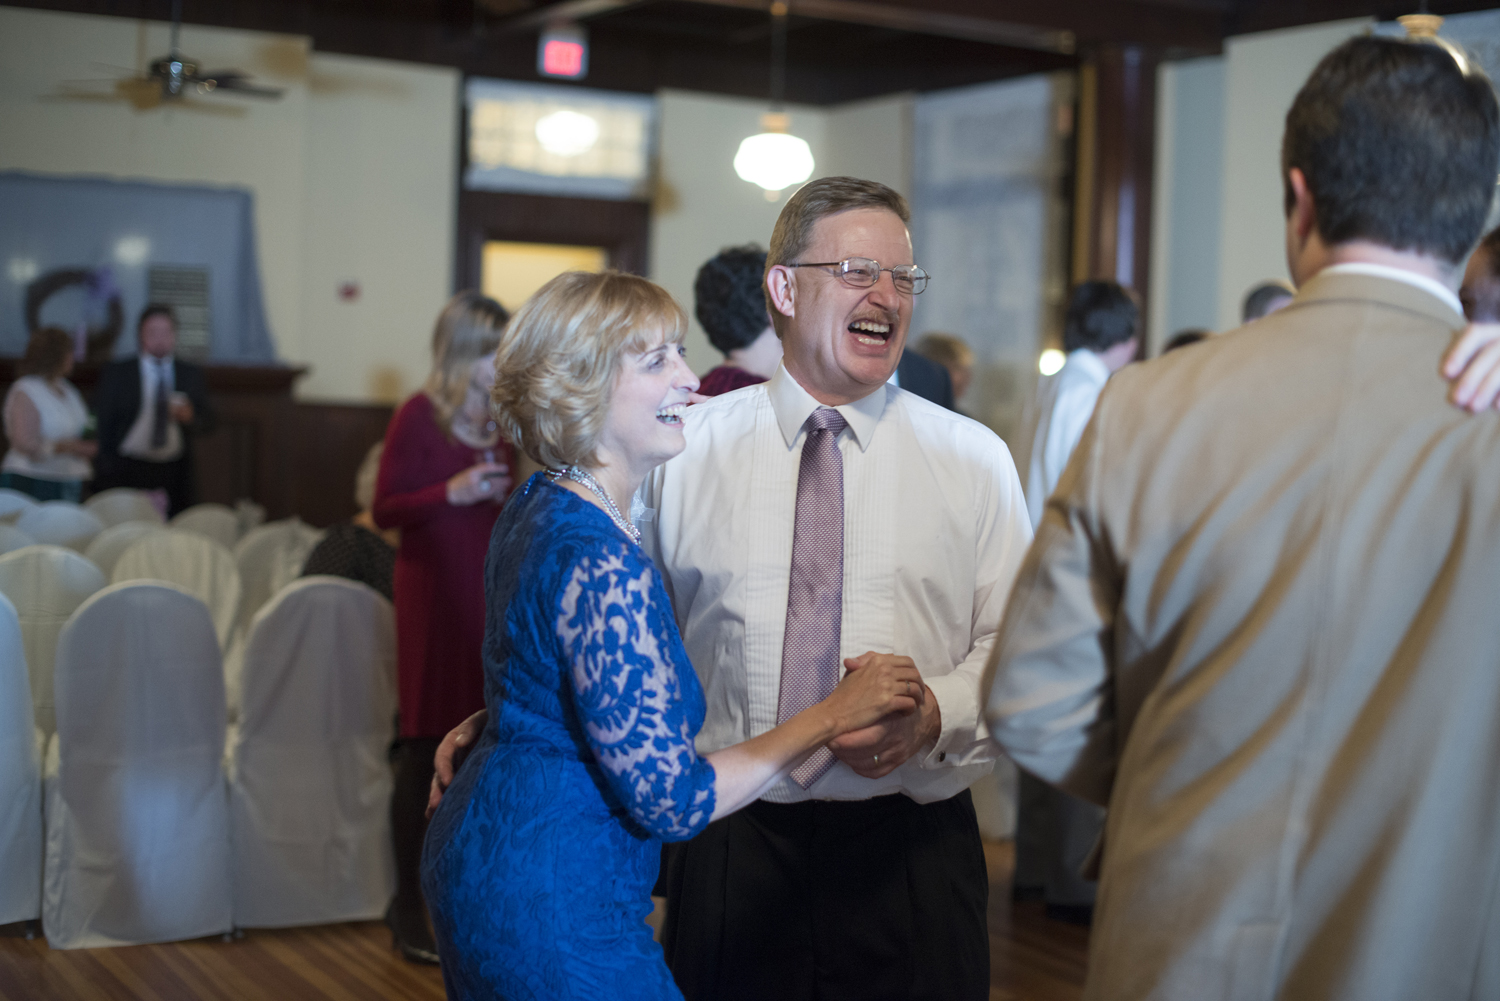 Mother and father of the bride dance at wedding reception